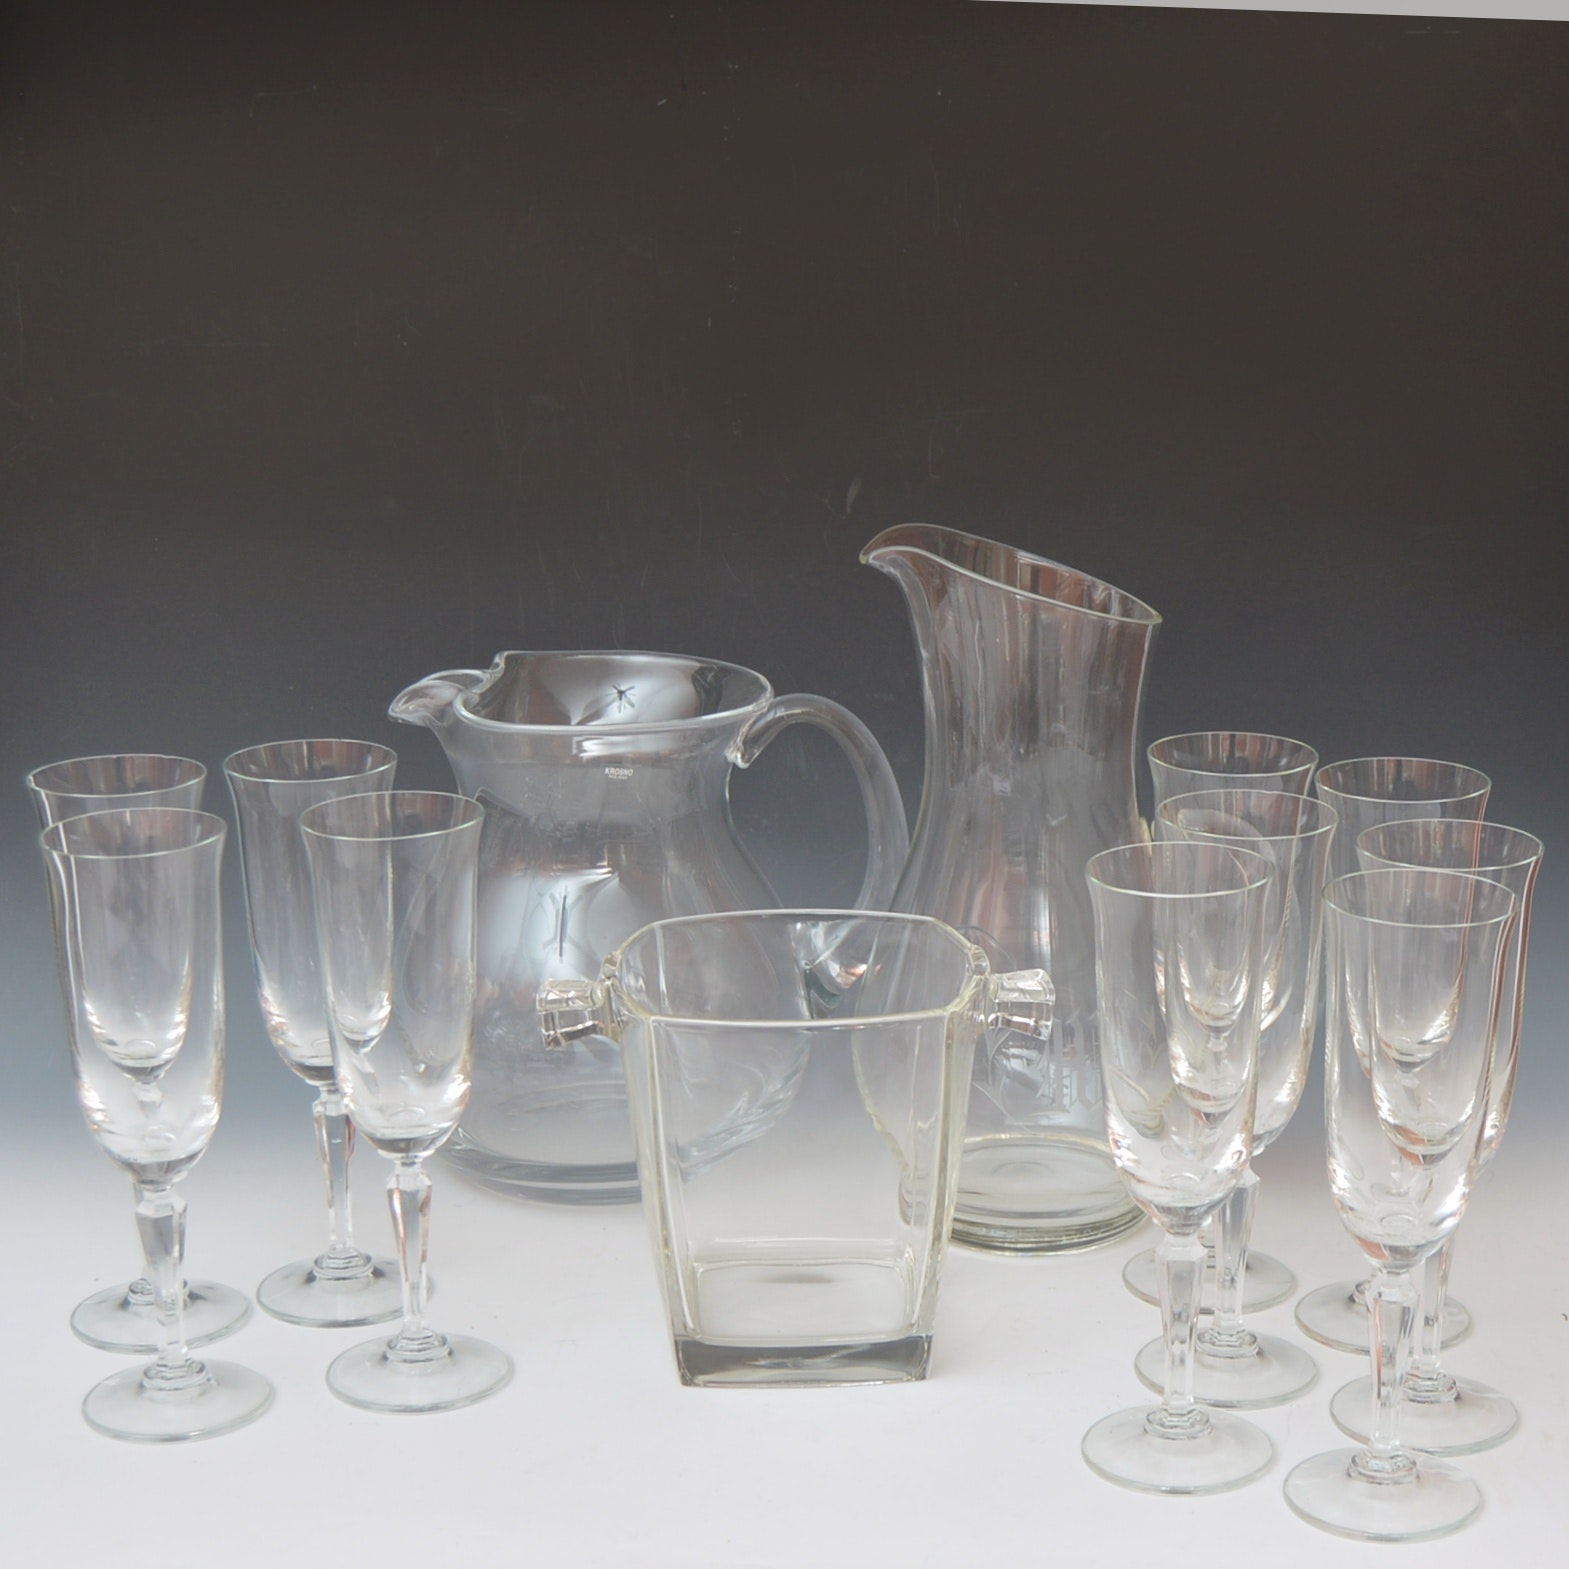 Selection of Crystal and Glass Barware with Pitchers